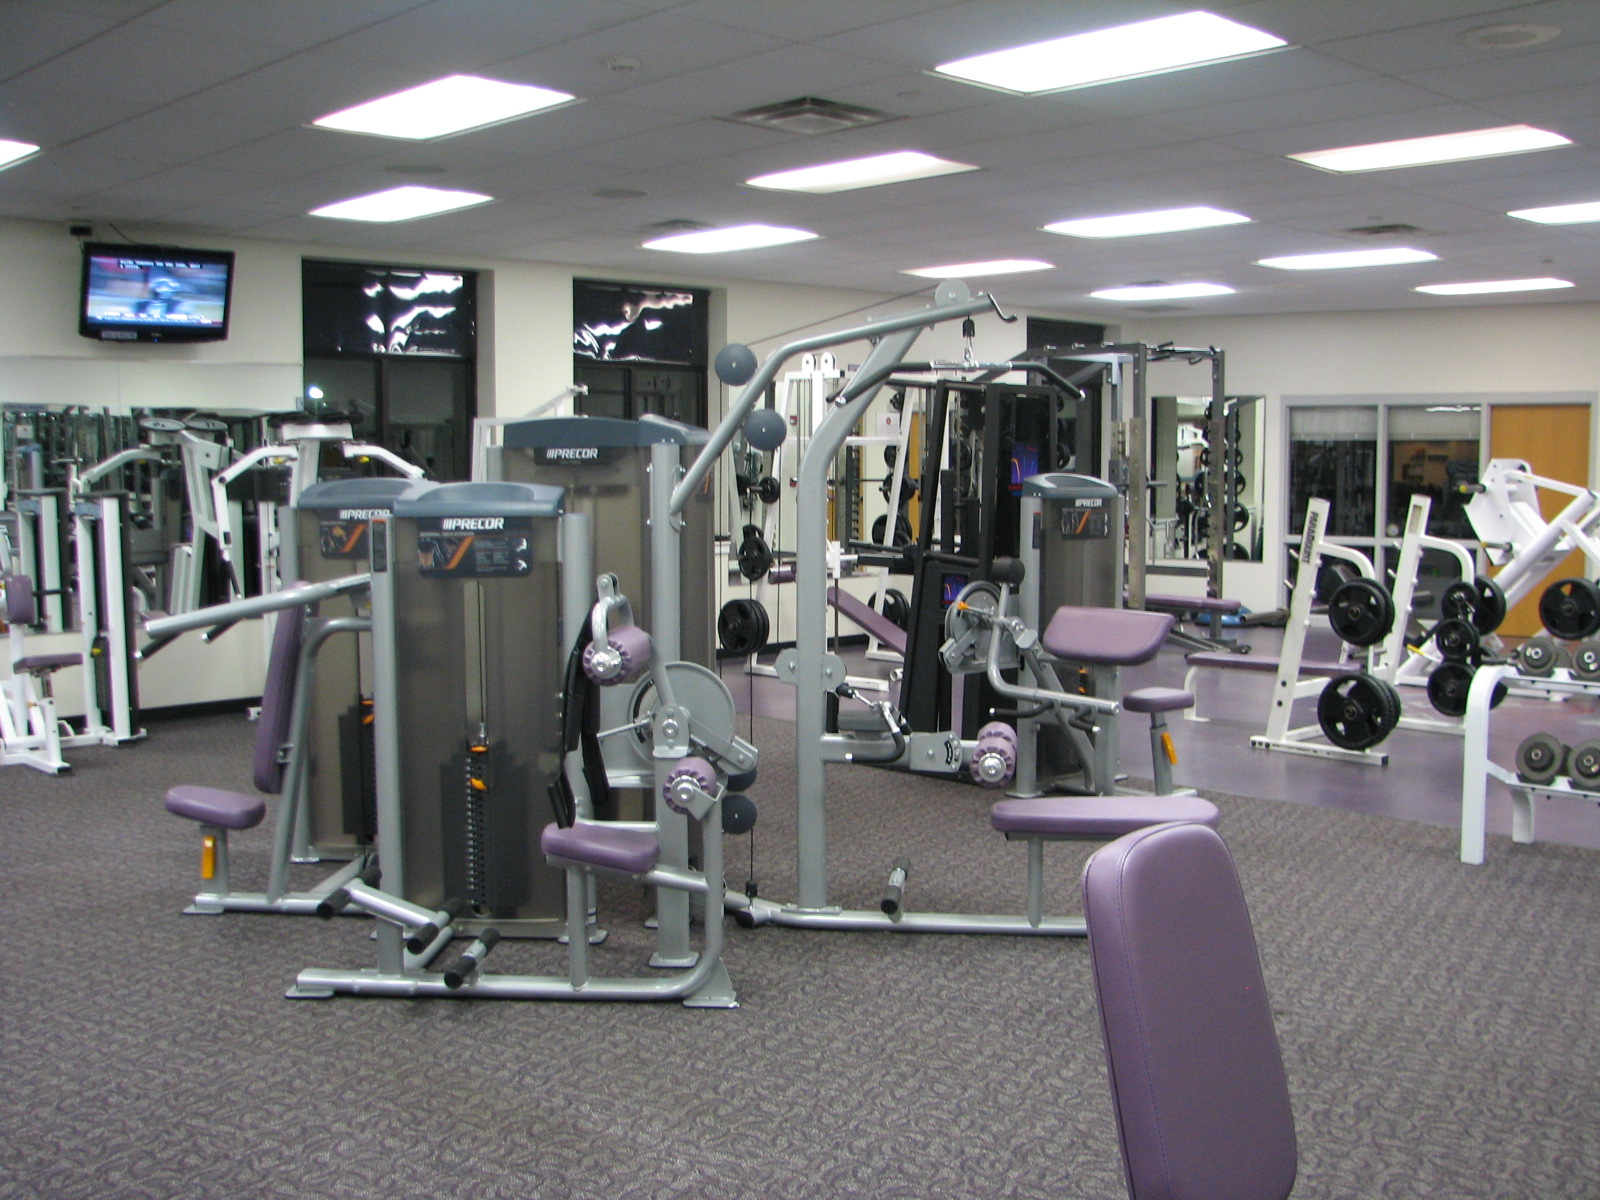 Gym Equipment Wallpapers